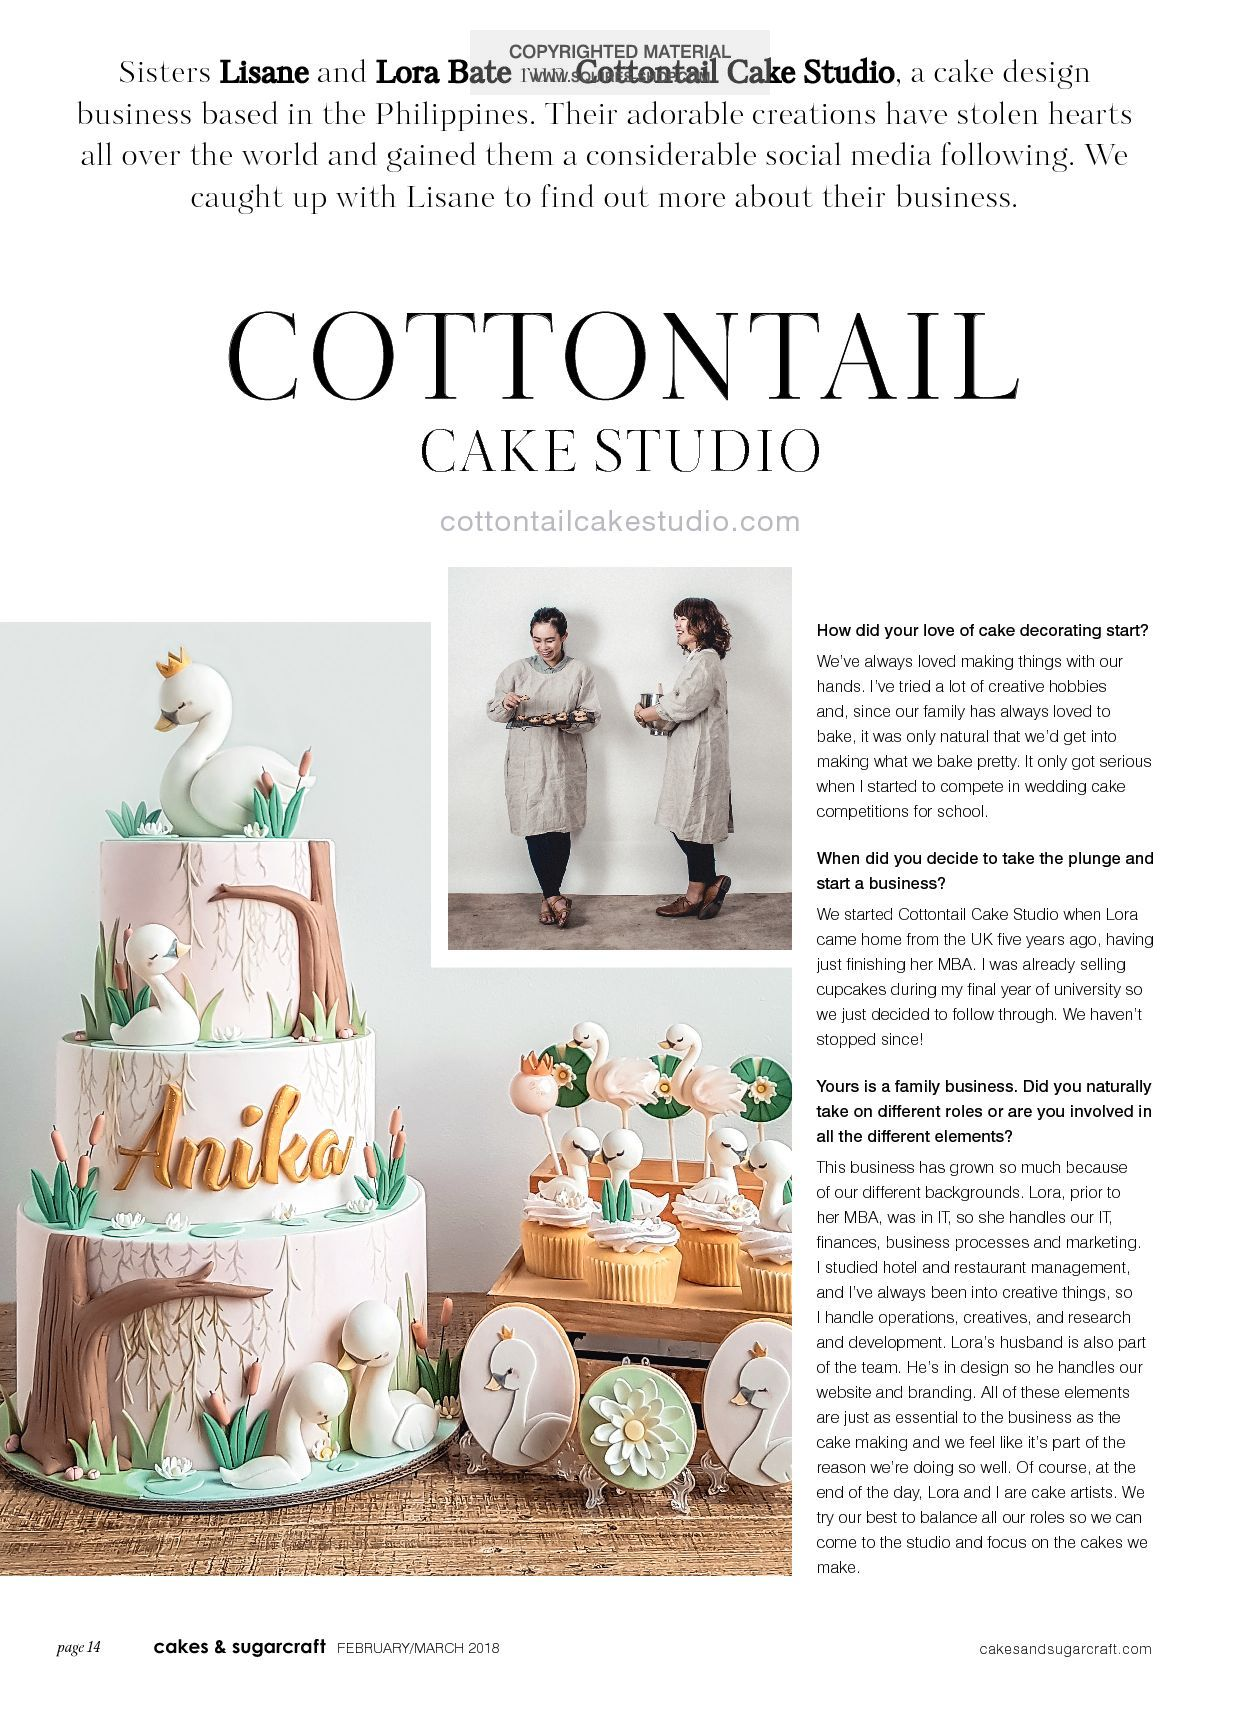 Cakes & Sugarcraft Magazine February/March 2018 | Squires Kitchen Shop